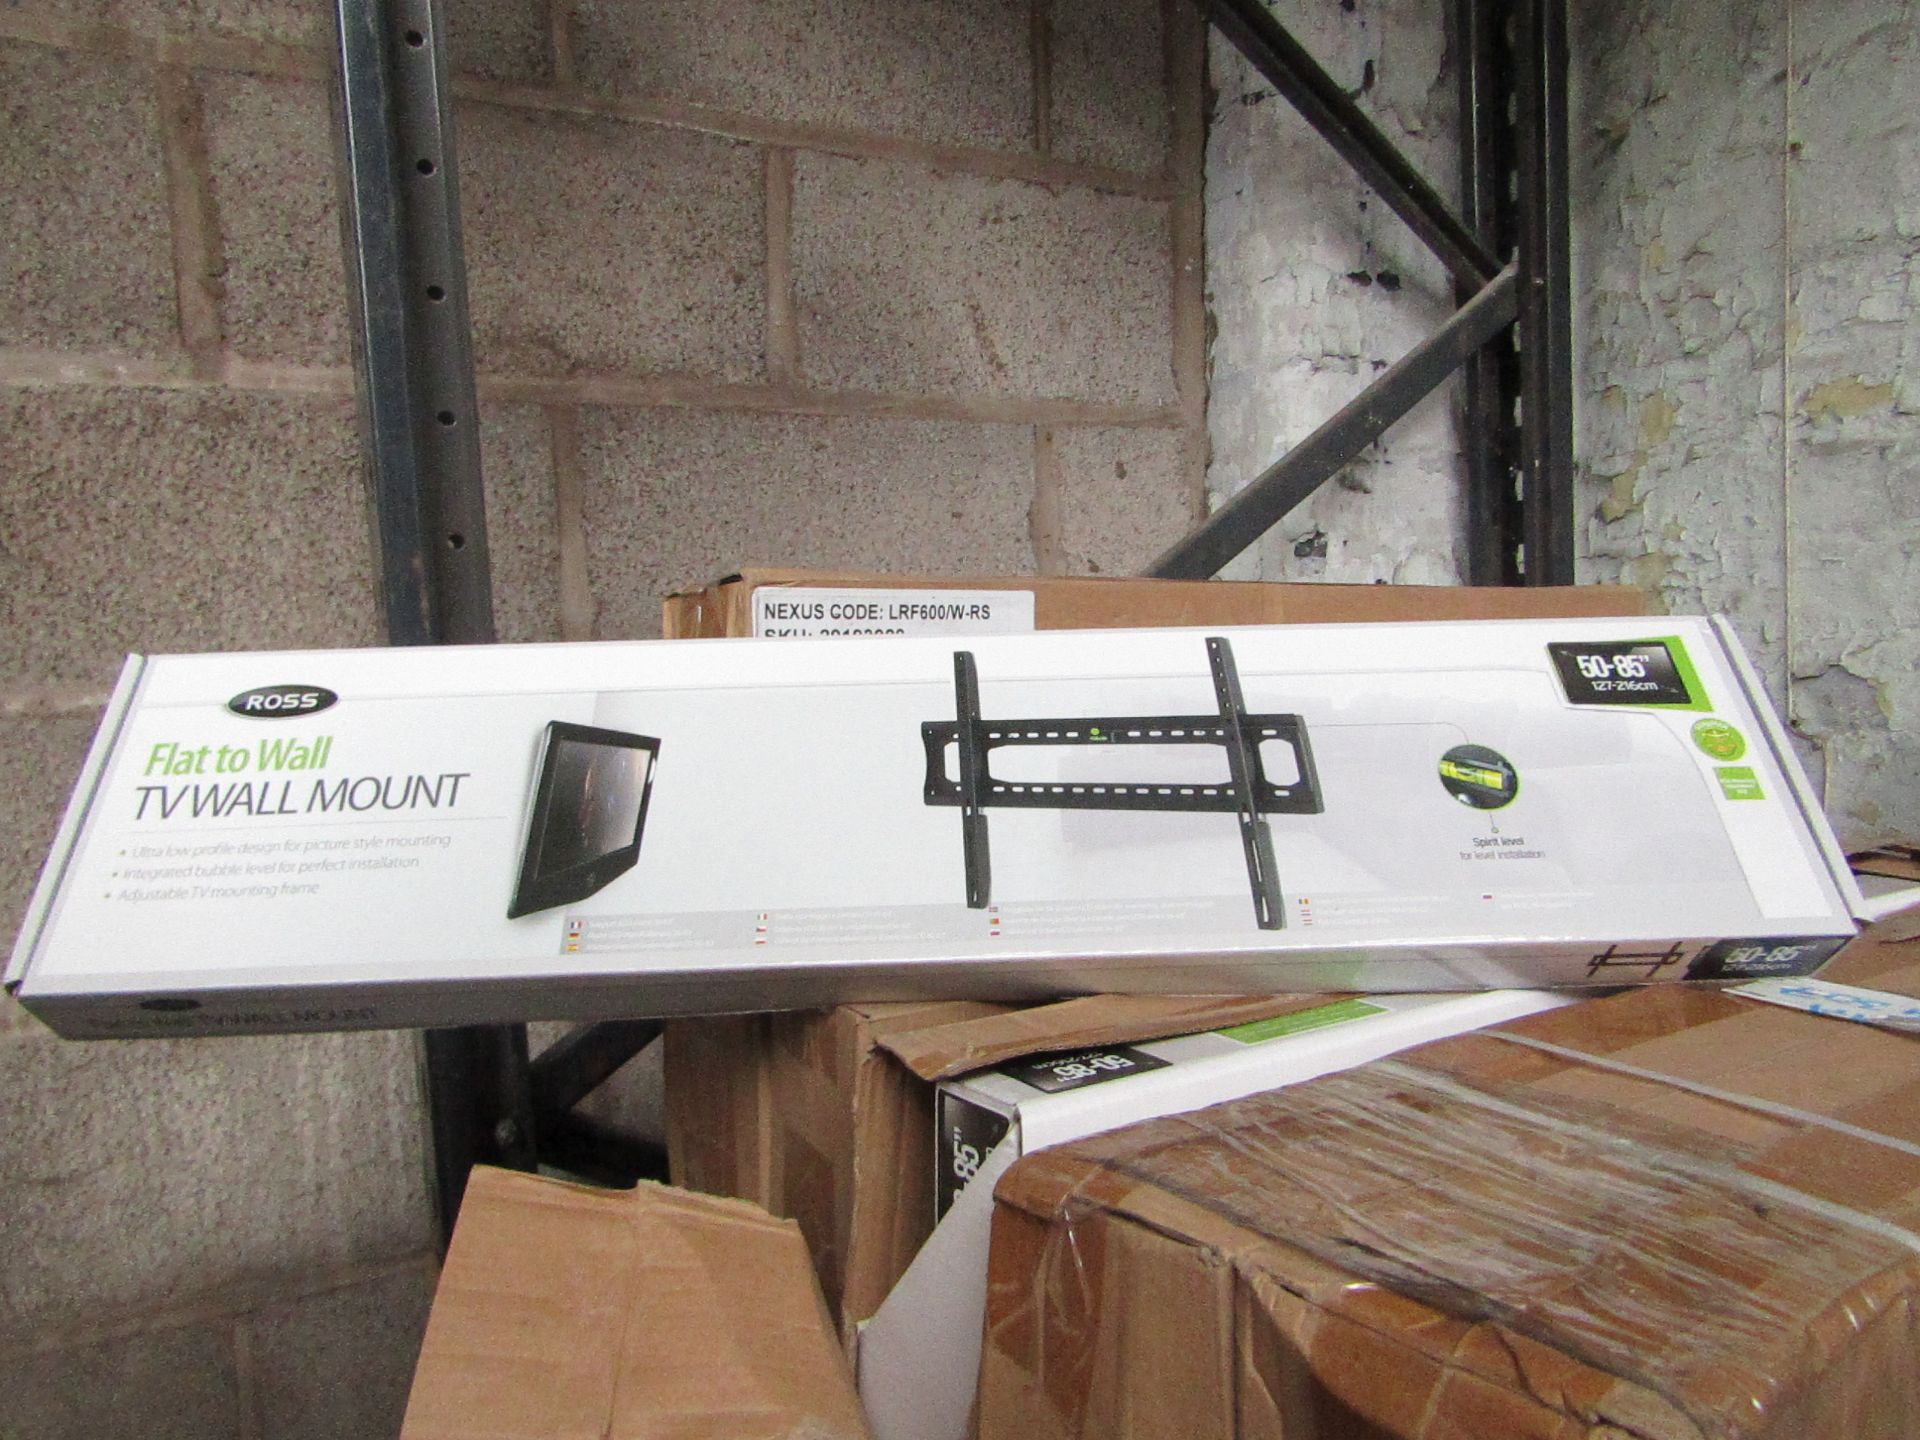 """Lot 180 - 2x Ross - Flat to Wall TV Mount 50 - 85"""" - New & Boxed."""